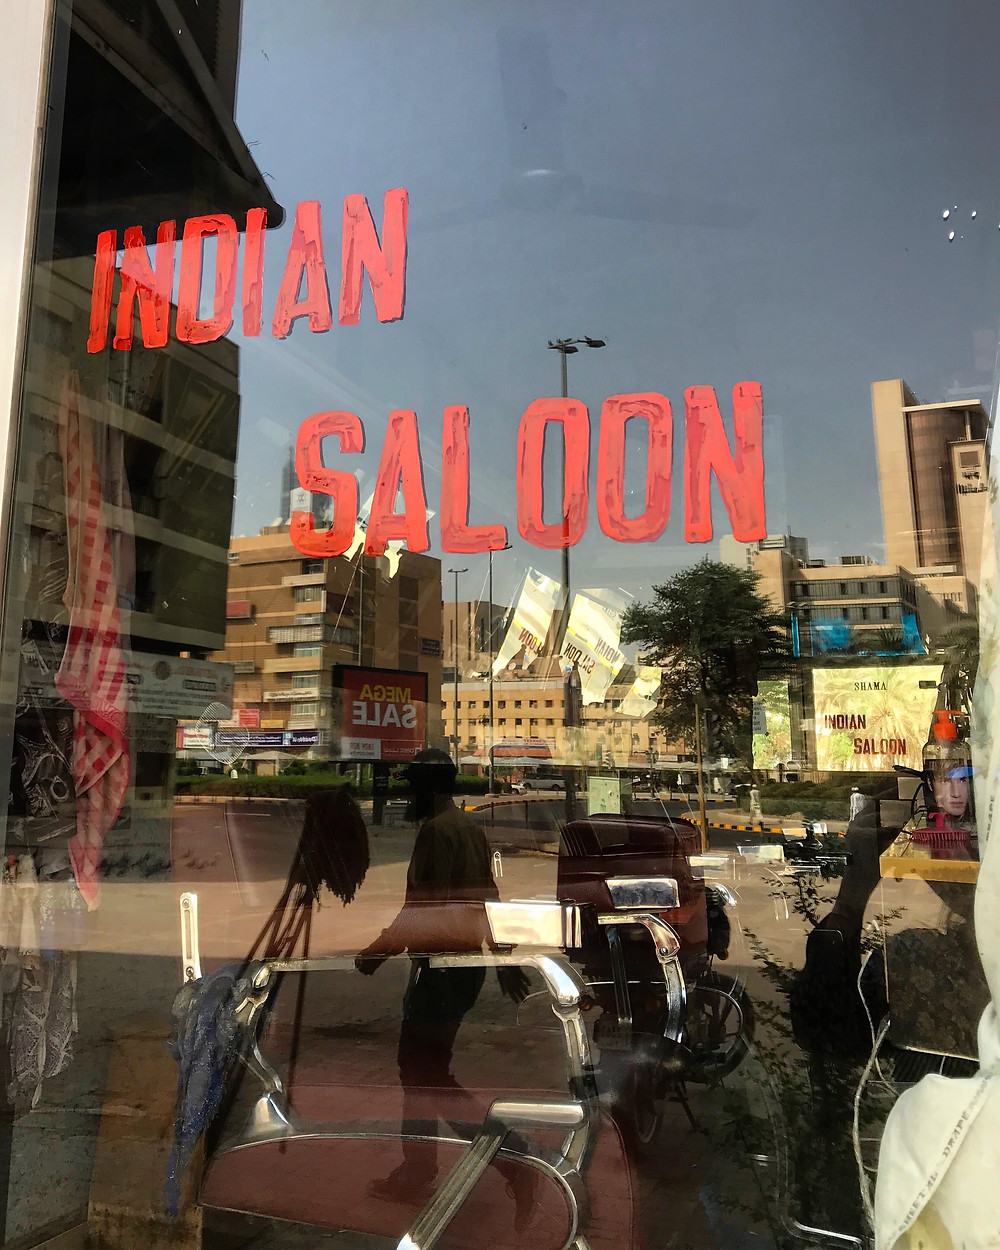 Indian Saloon beauty salon Kuwait